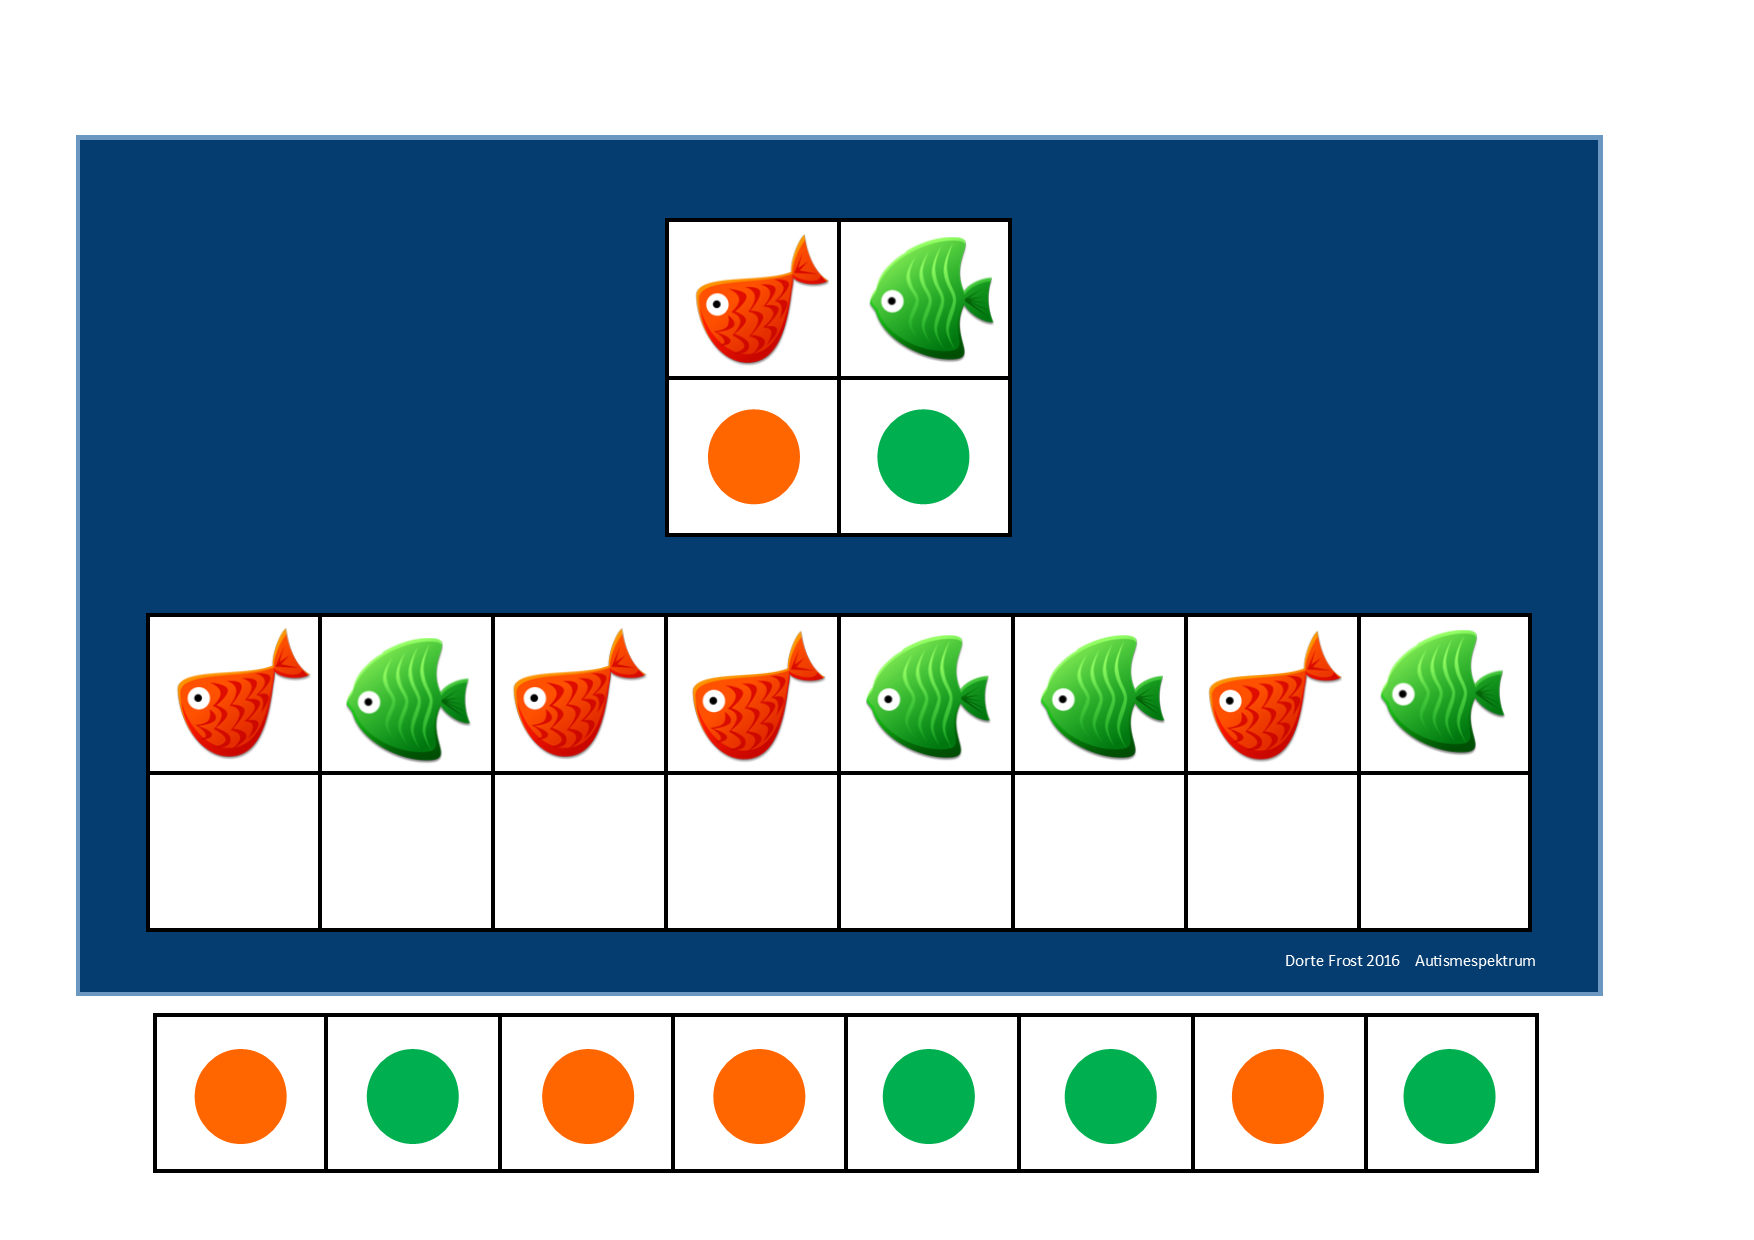 Board And Tiles For The 2 Fish Visual Perception Game By